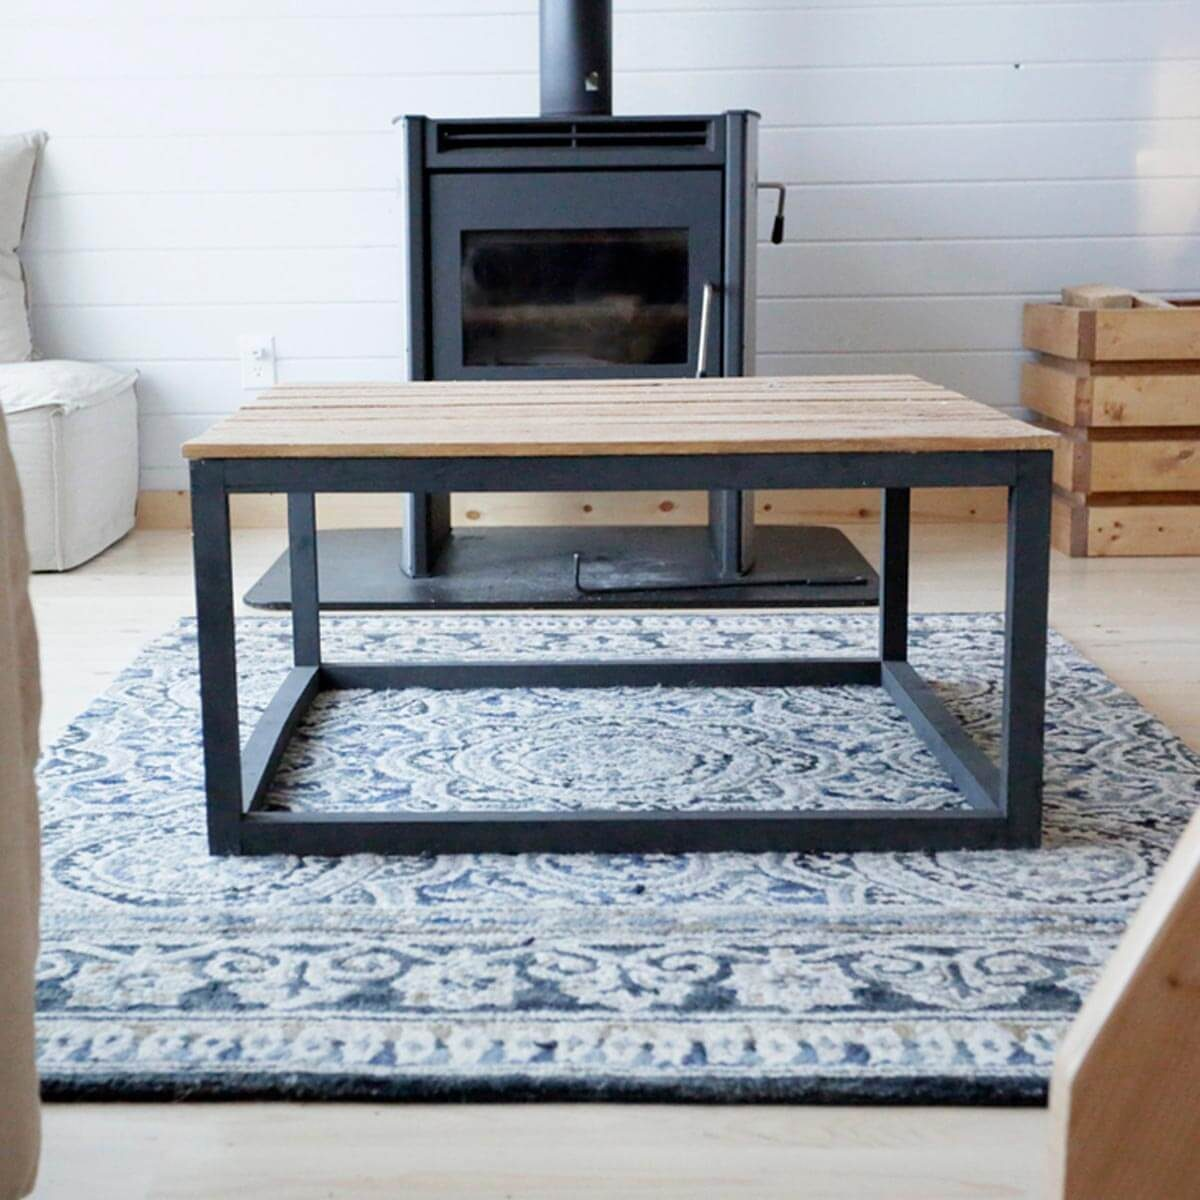 dfh8_i ndustrial coffee table